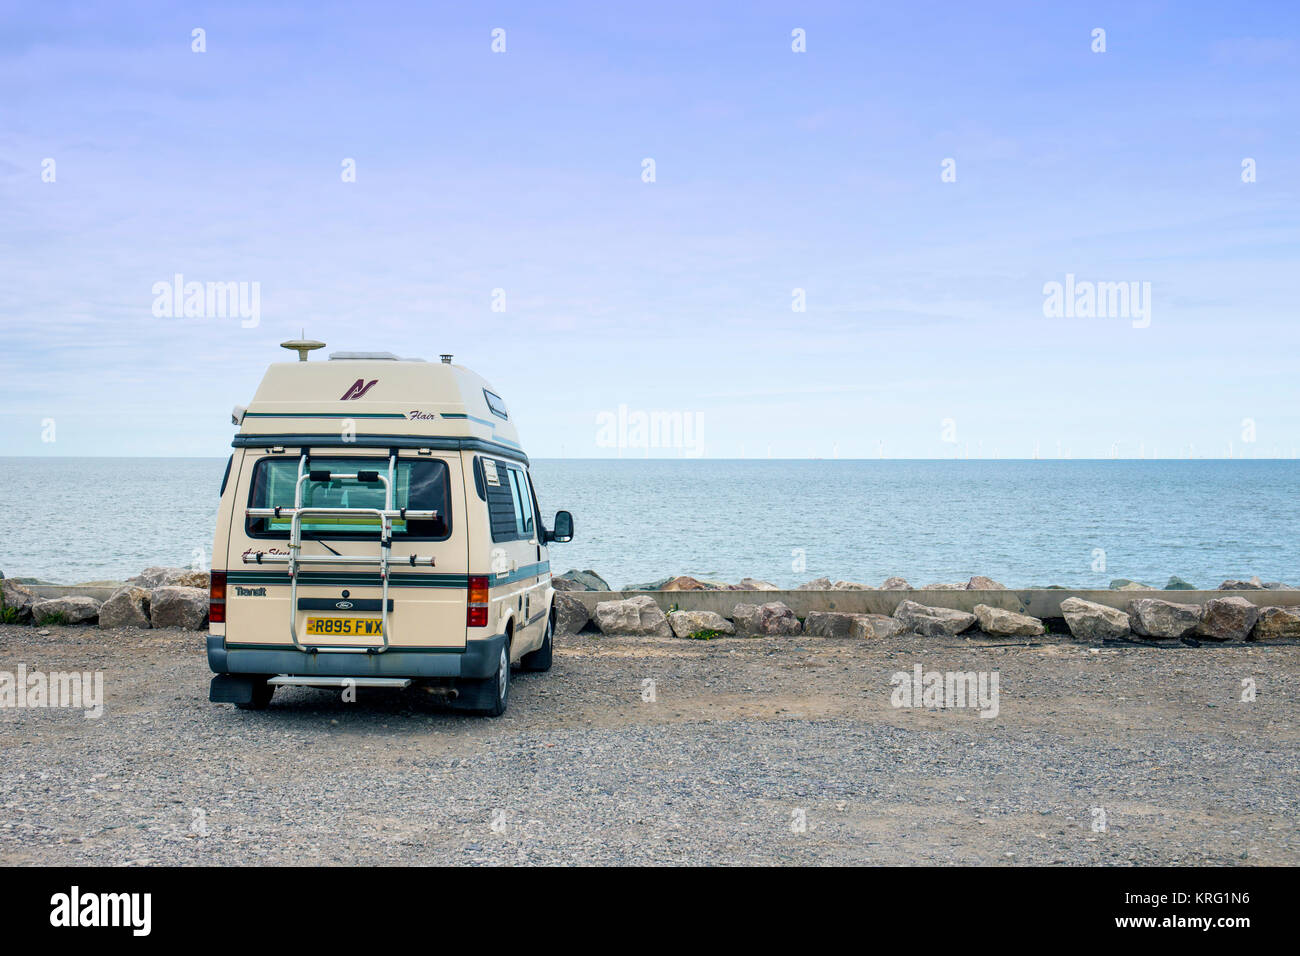 Ford Flair Auto Sleeper camper van looking out to sea UK - Stock Image